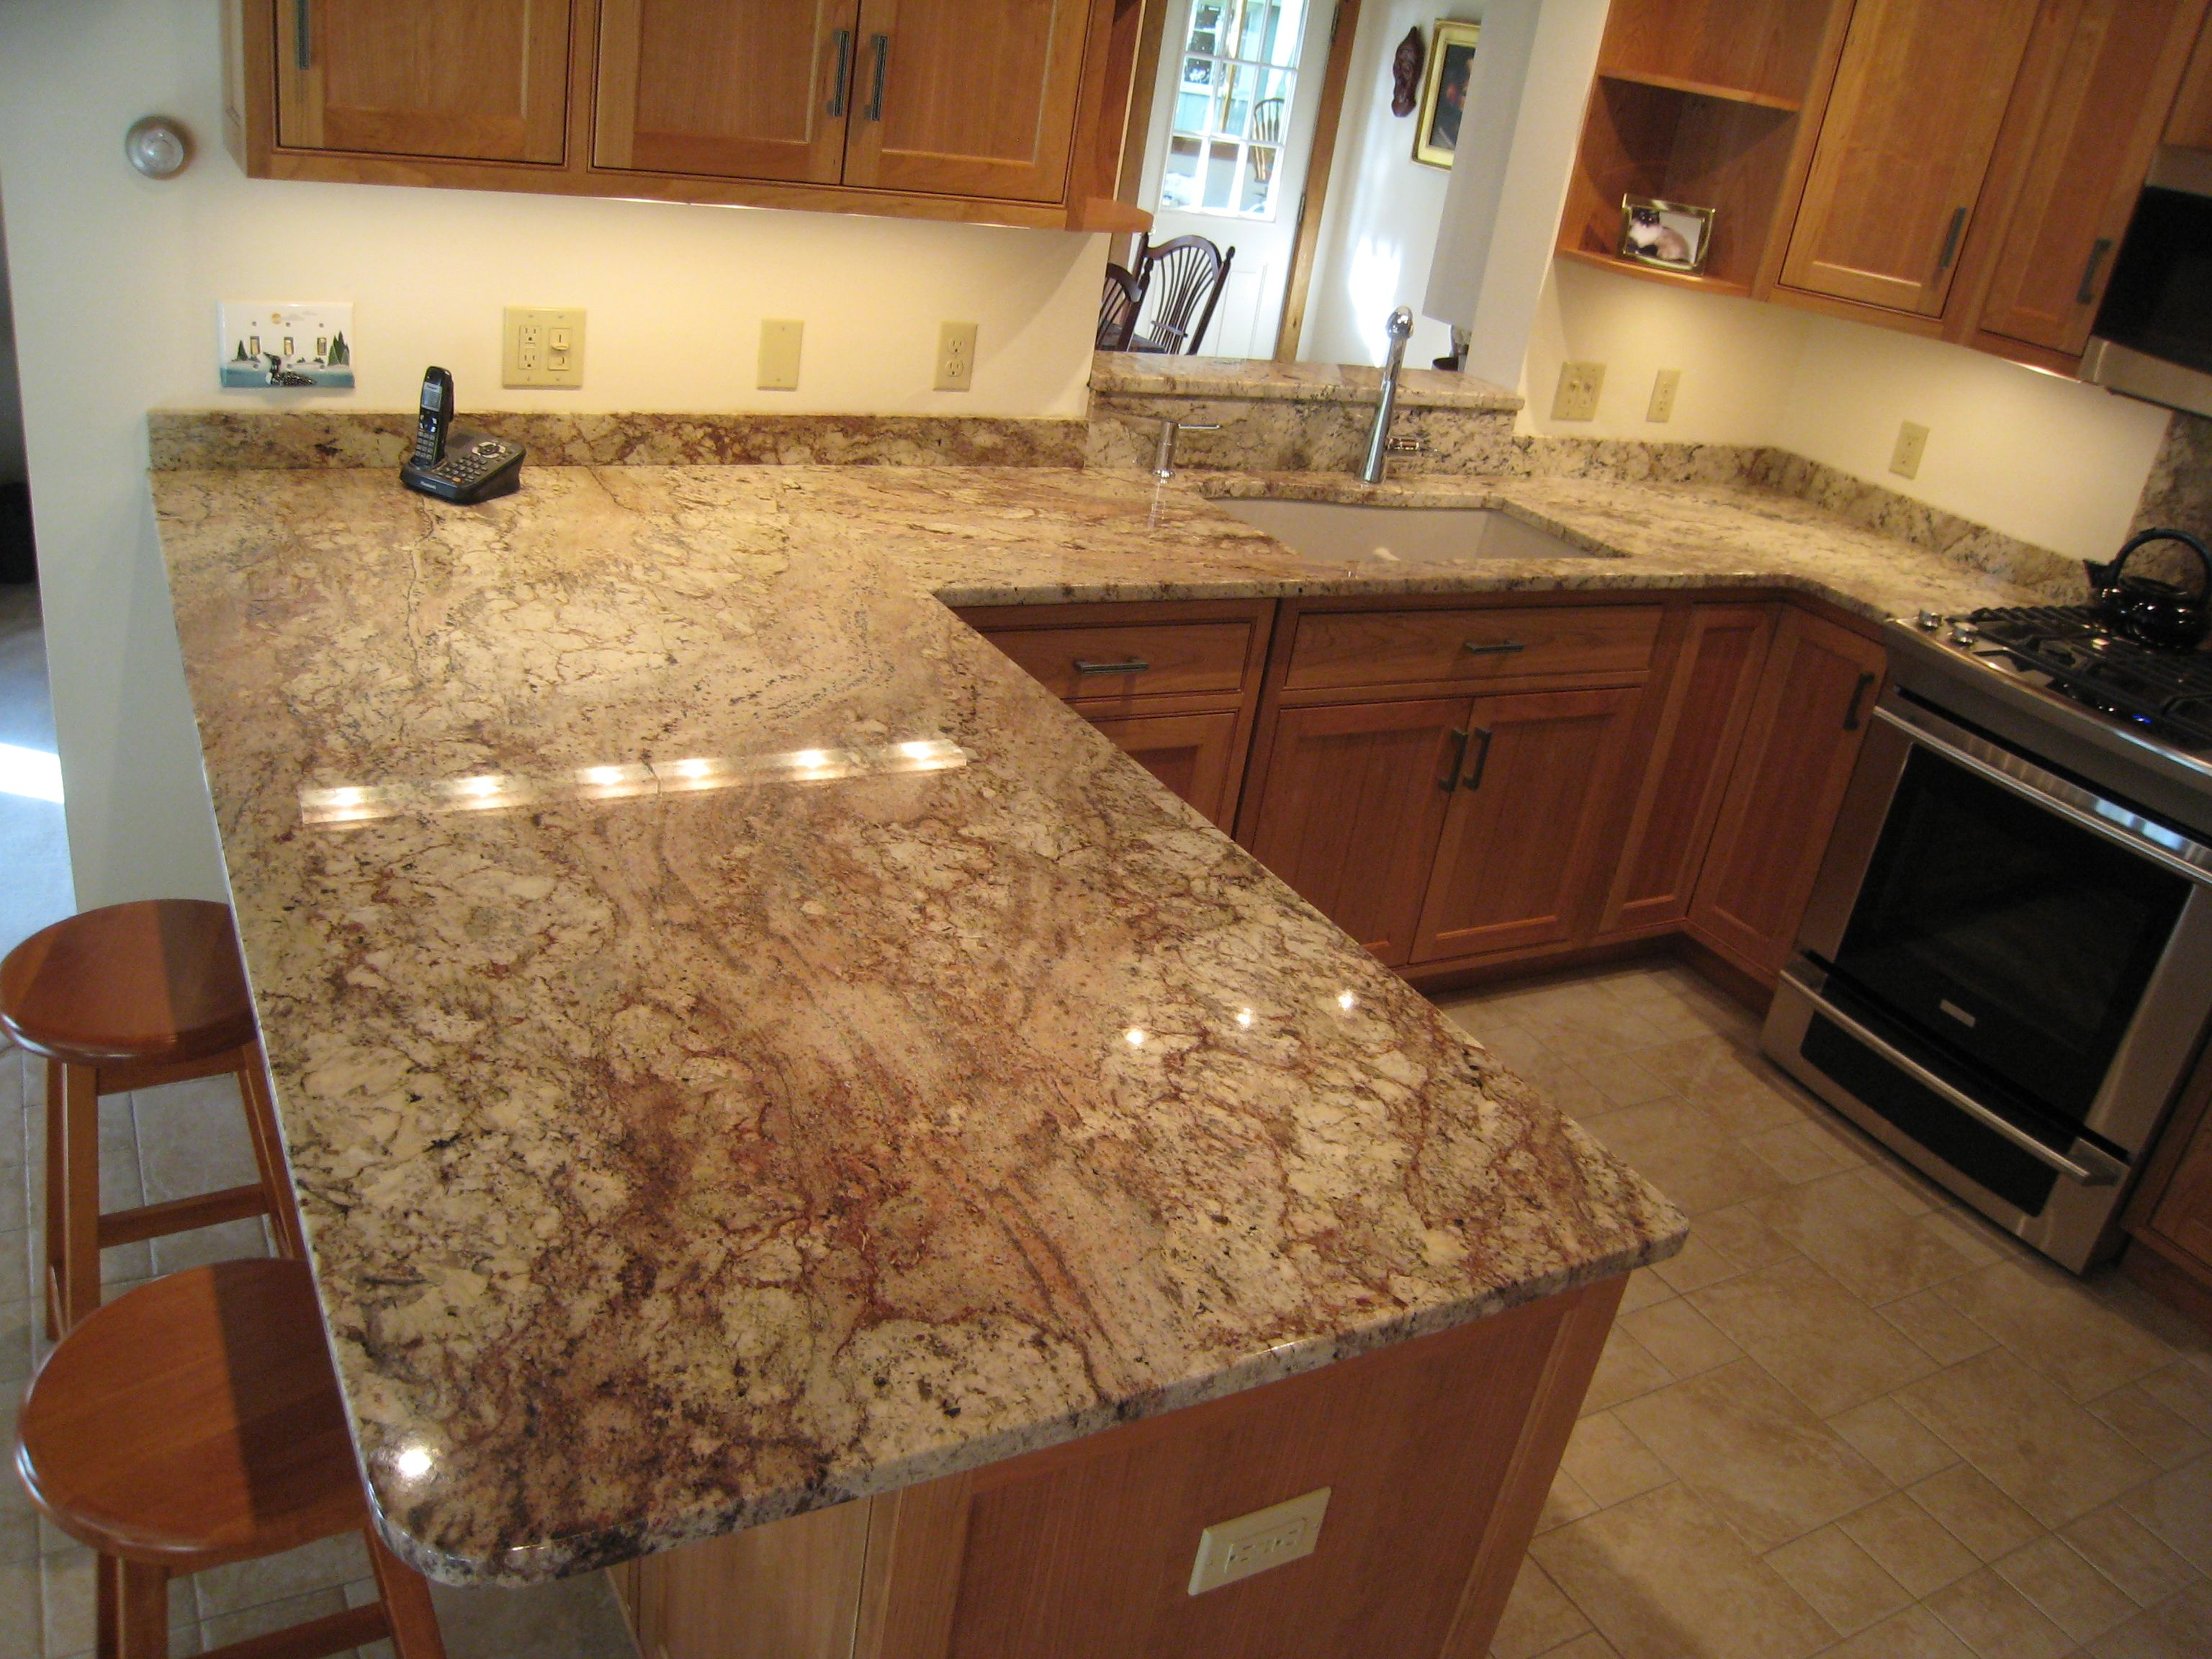 Granite Kitchen Floors Like This Color Granite Maybe With Wood Floors And White Cabinets